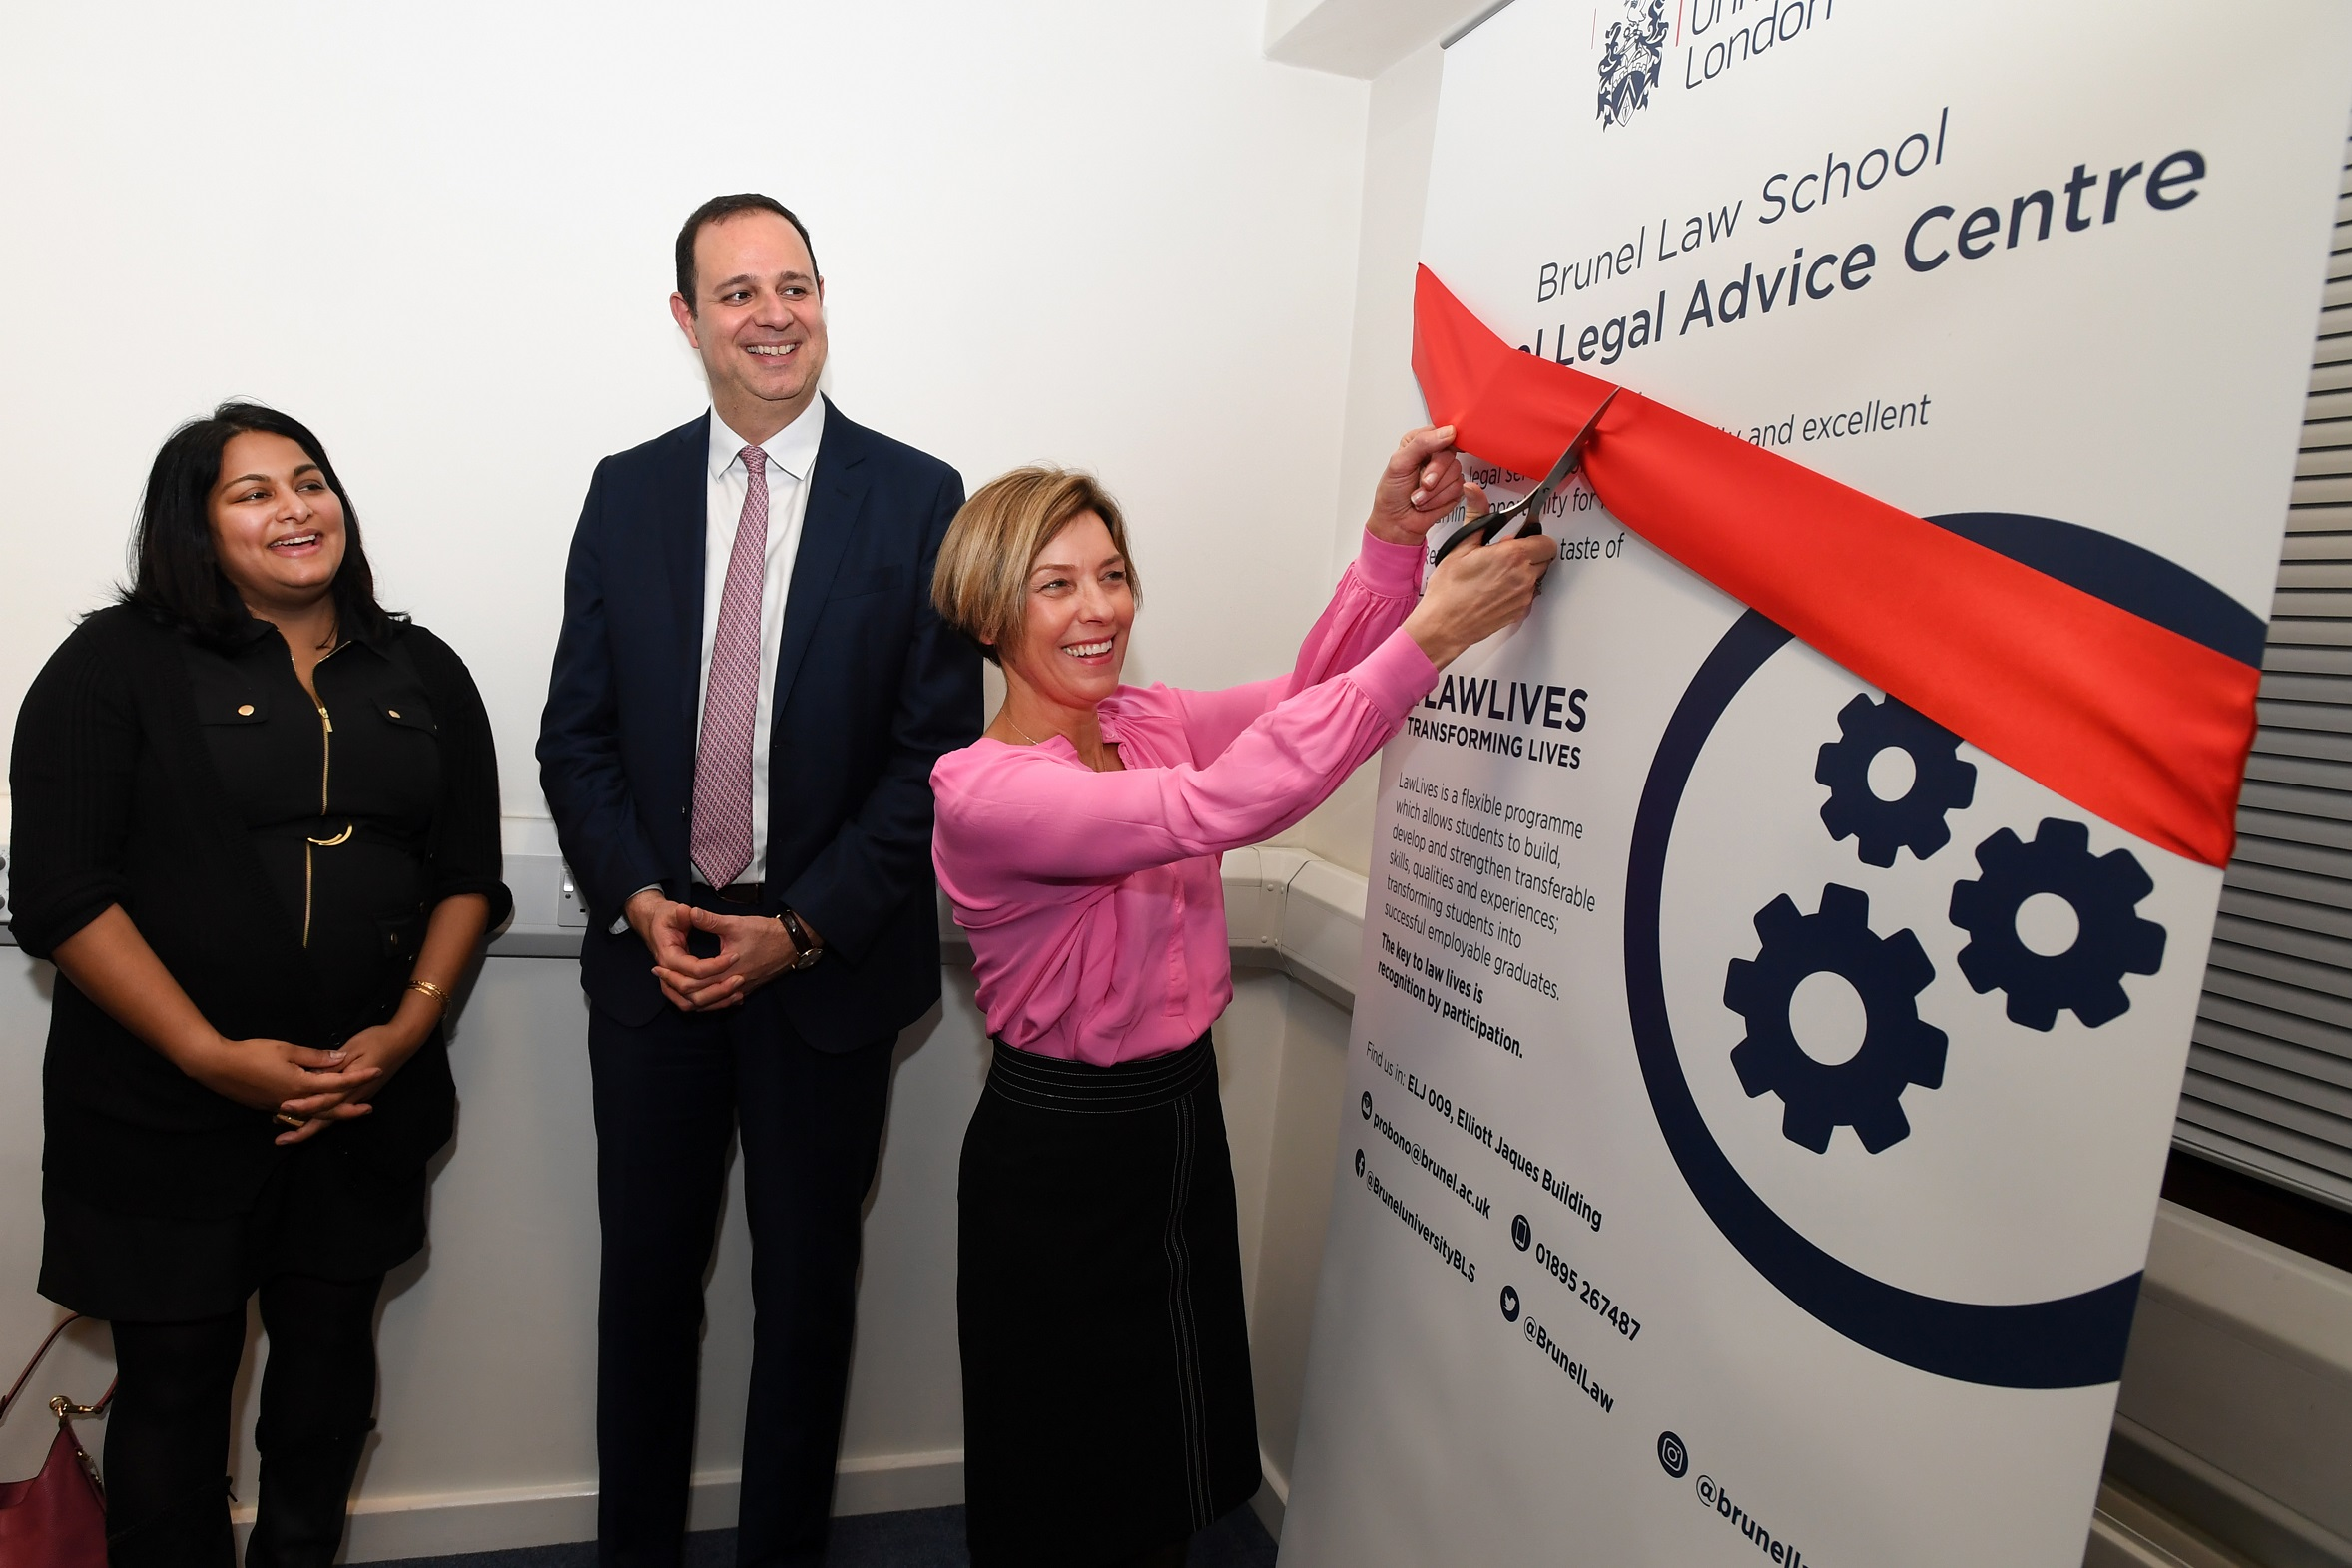 Legal Advice Centre Launch-02 v2